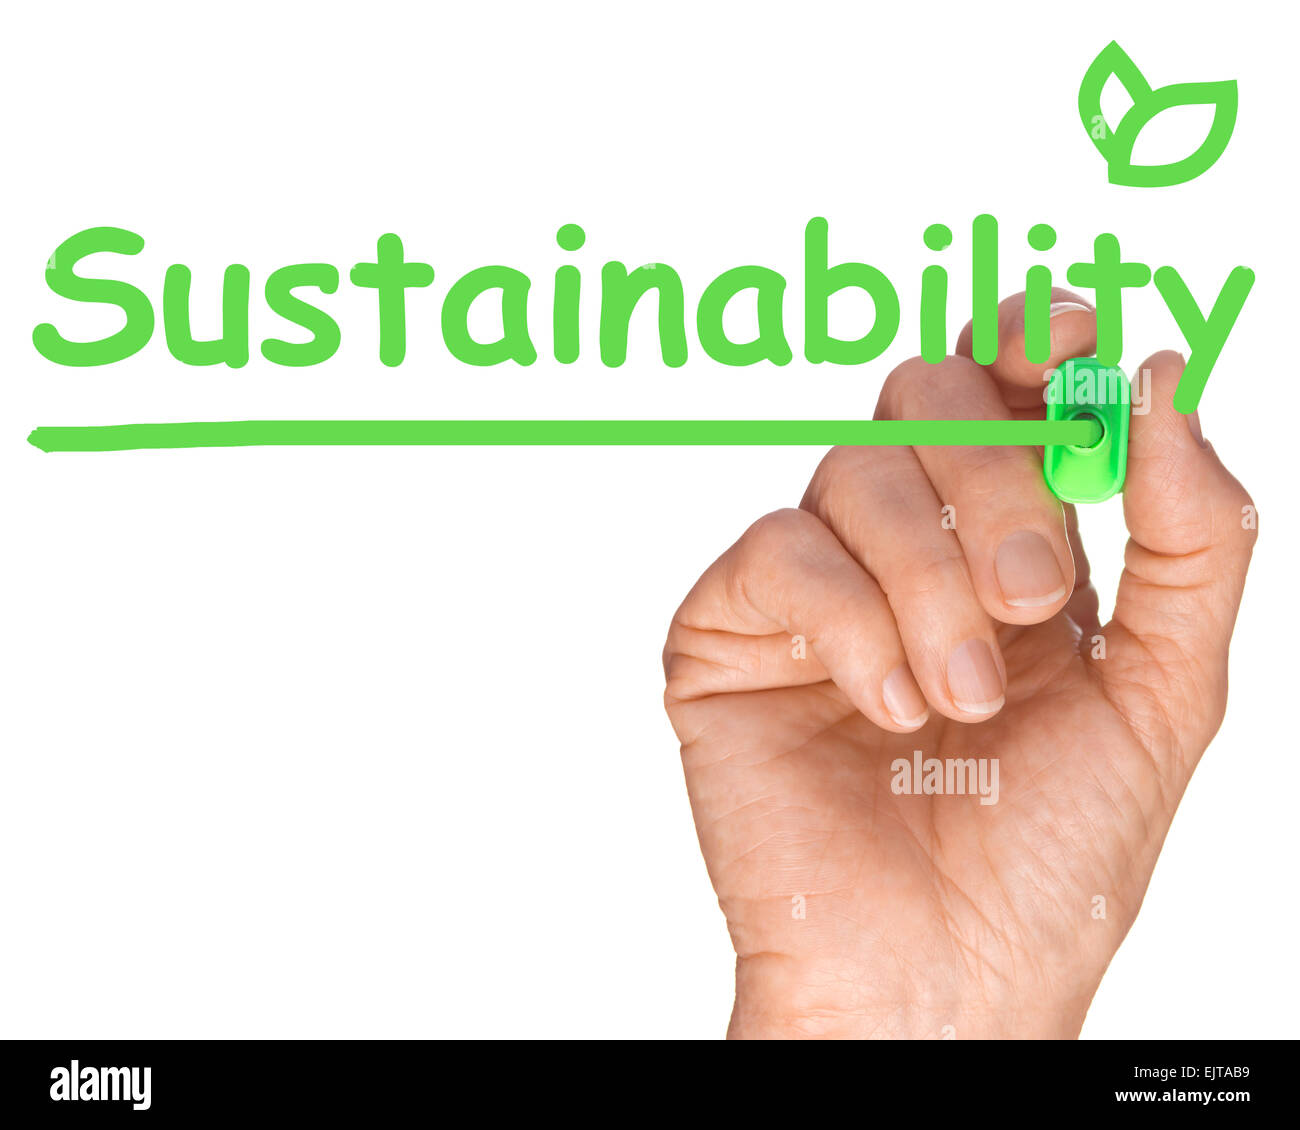 Ecology concept - Hand with Green Pen Drawing Sustainability - Stock Image